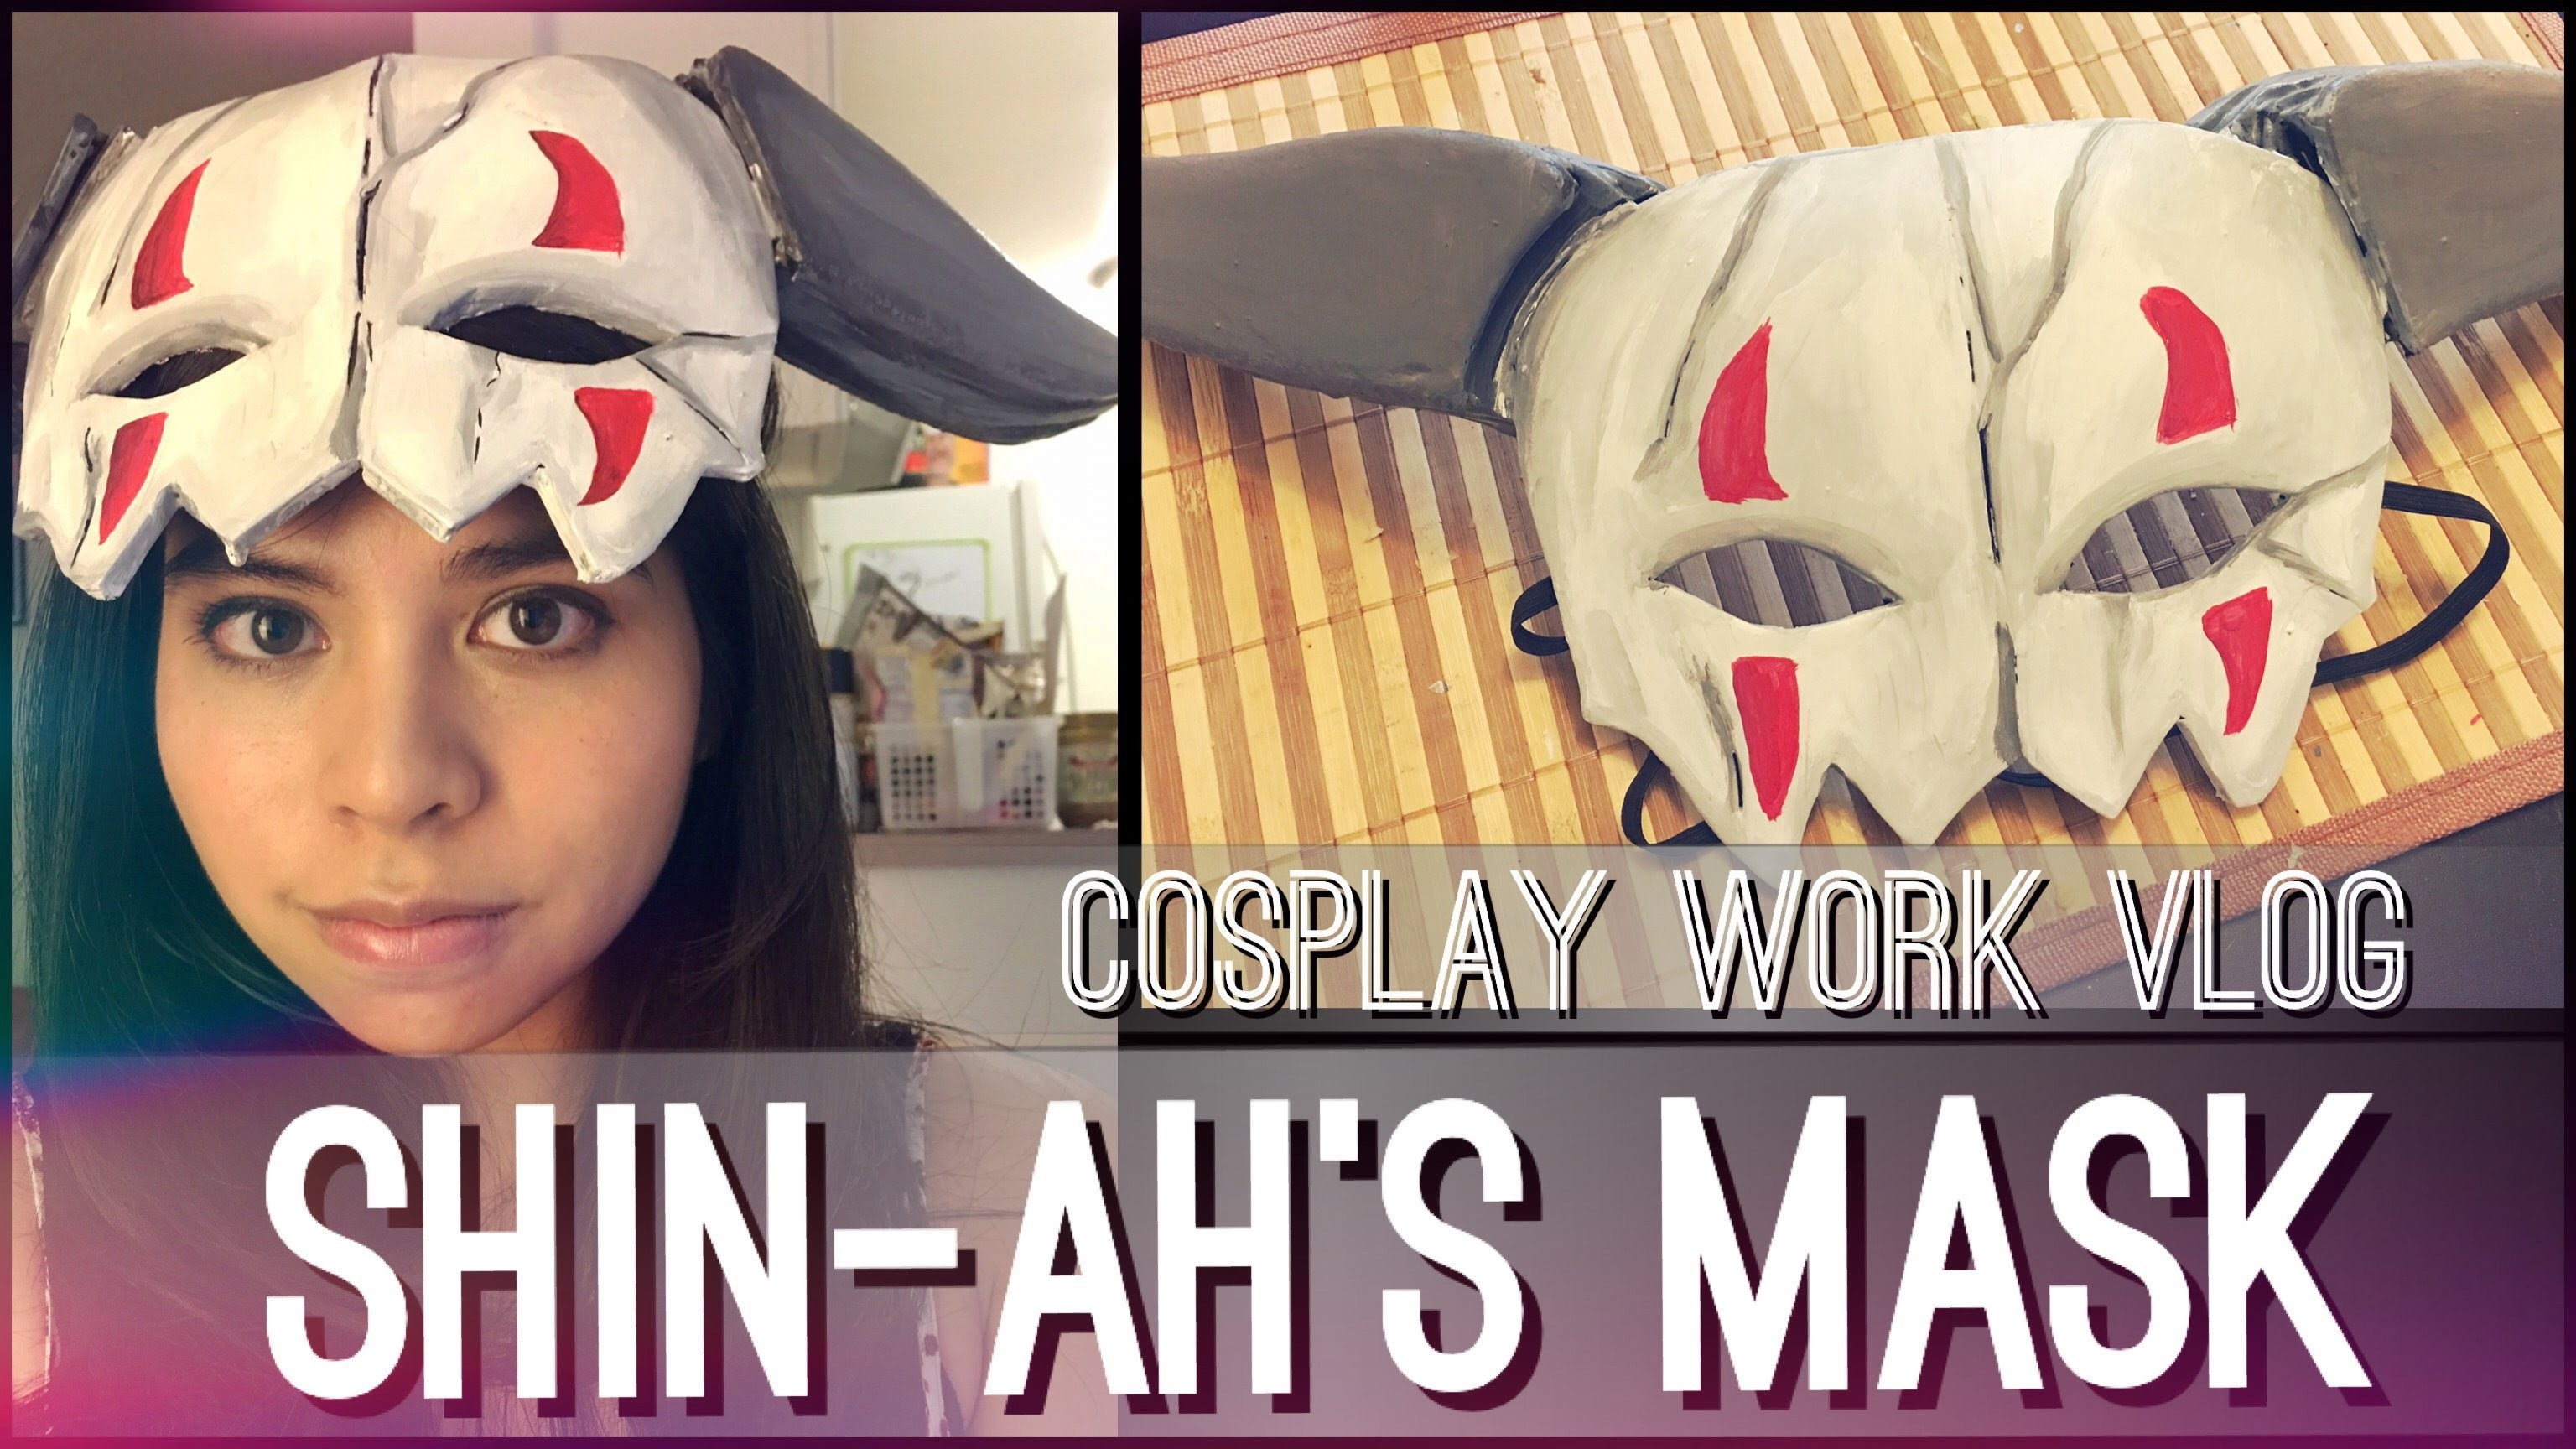 Shin-Ah's Mask - Cosplay Work Vlog | Yona of the Dawn || shainadilla